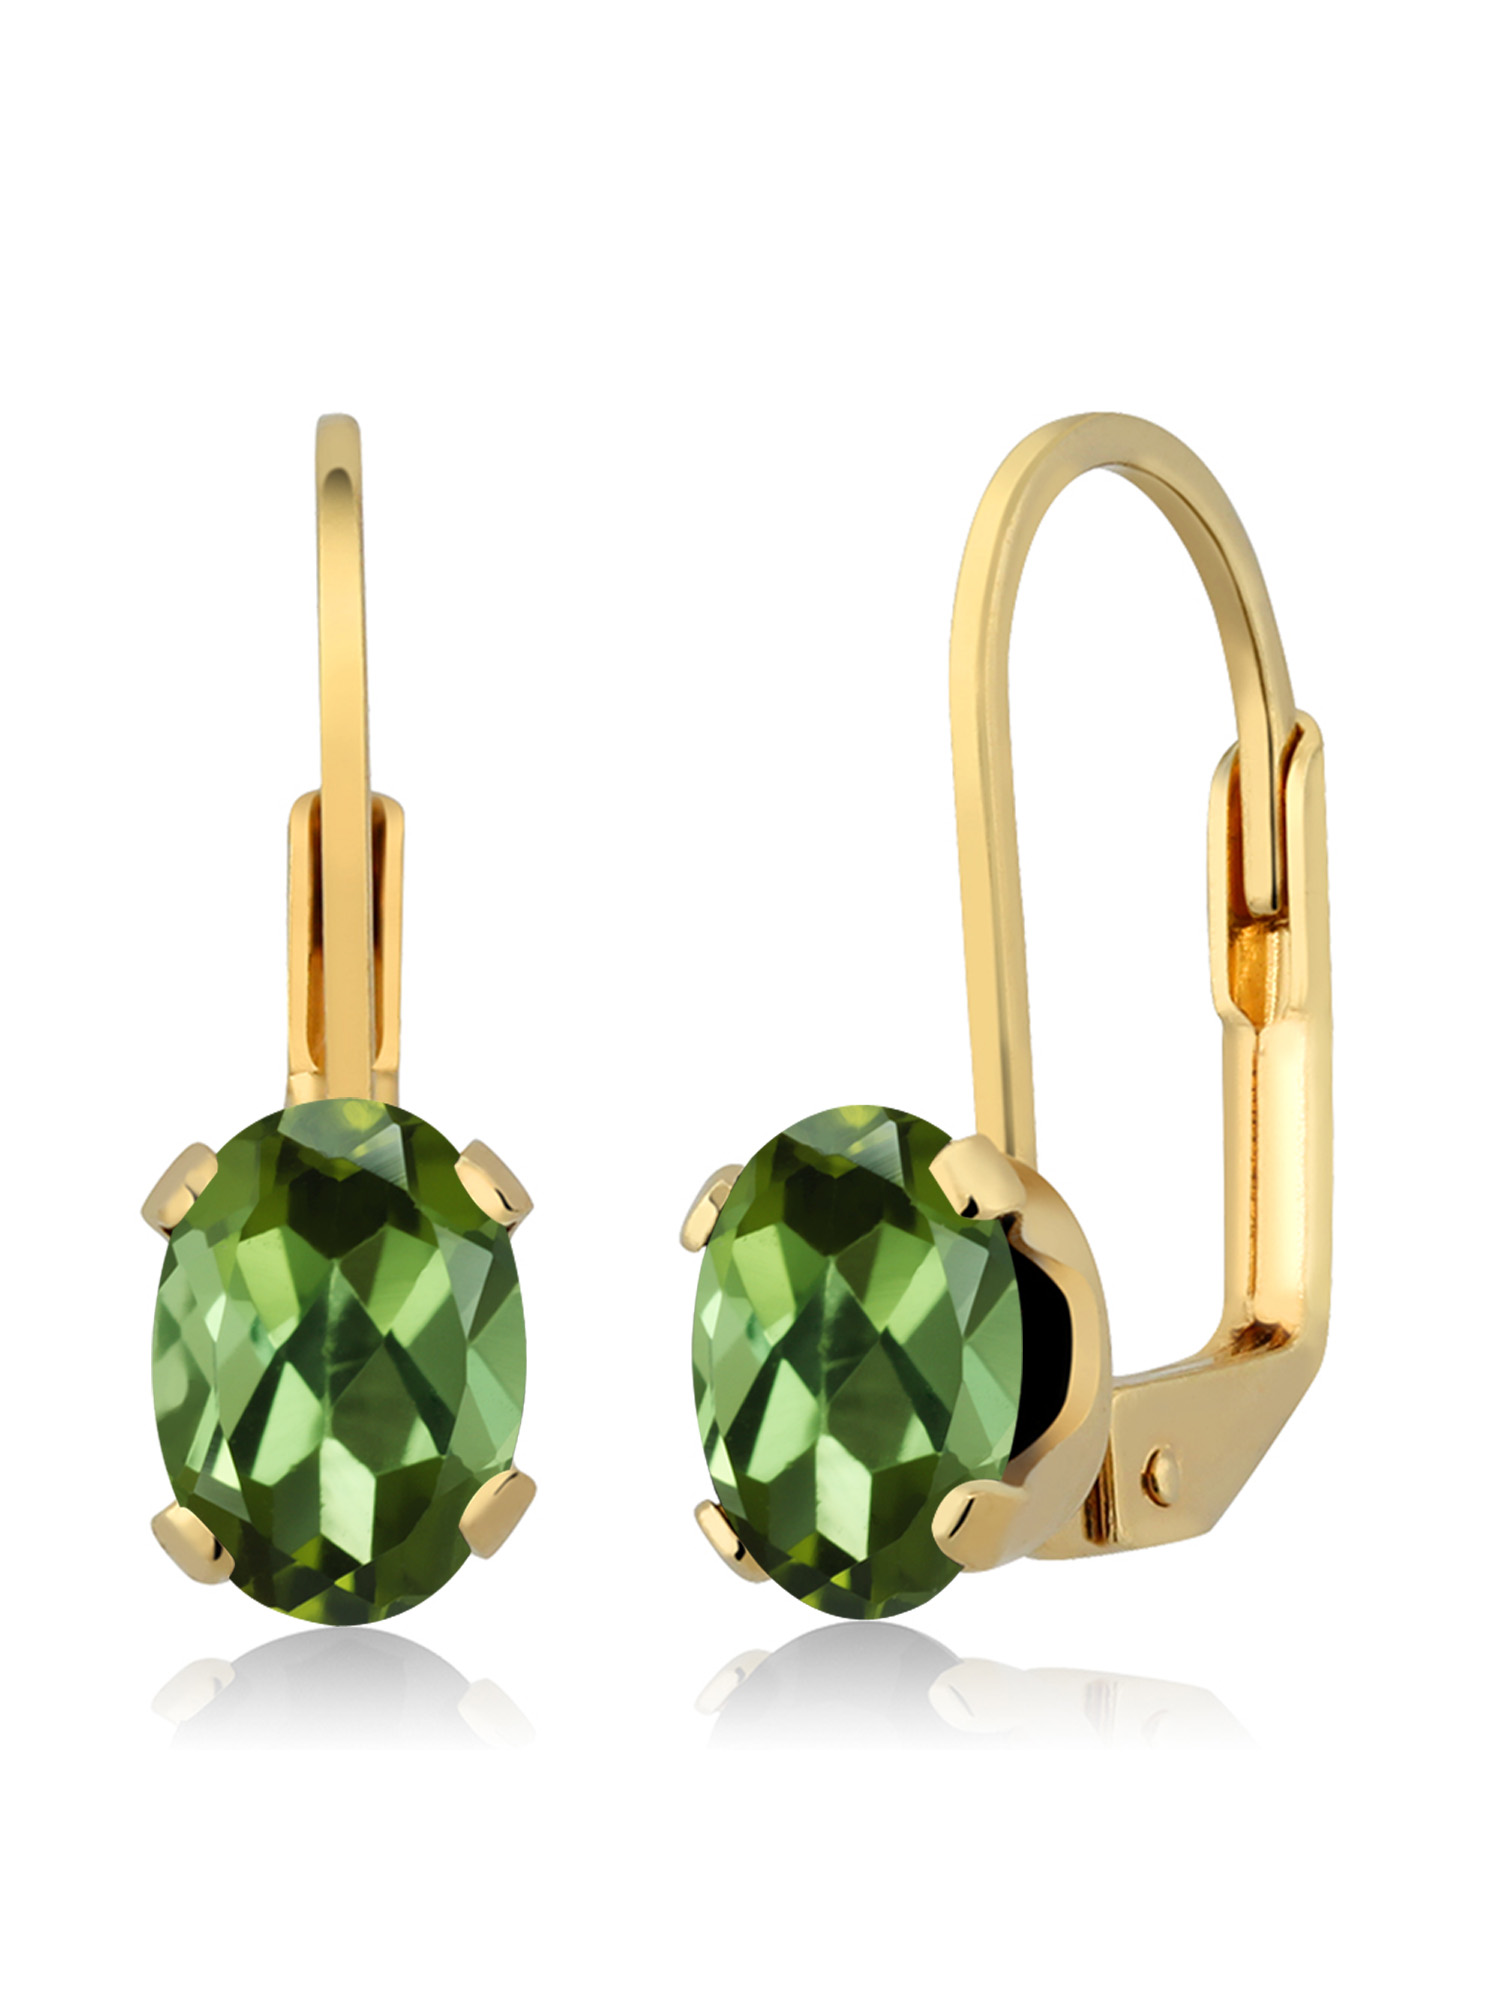 1.40 Ct Oval Green Tourmaline 14K Yellow Gold Earrings by